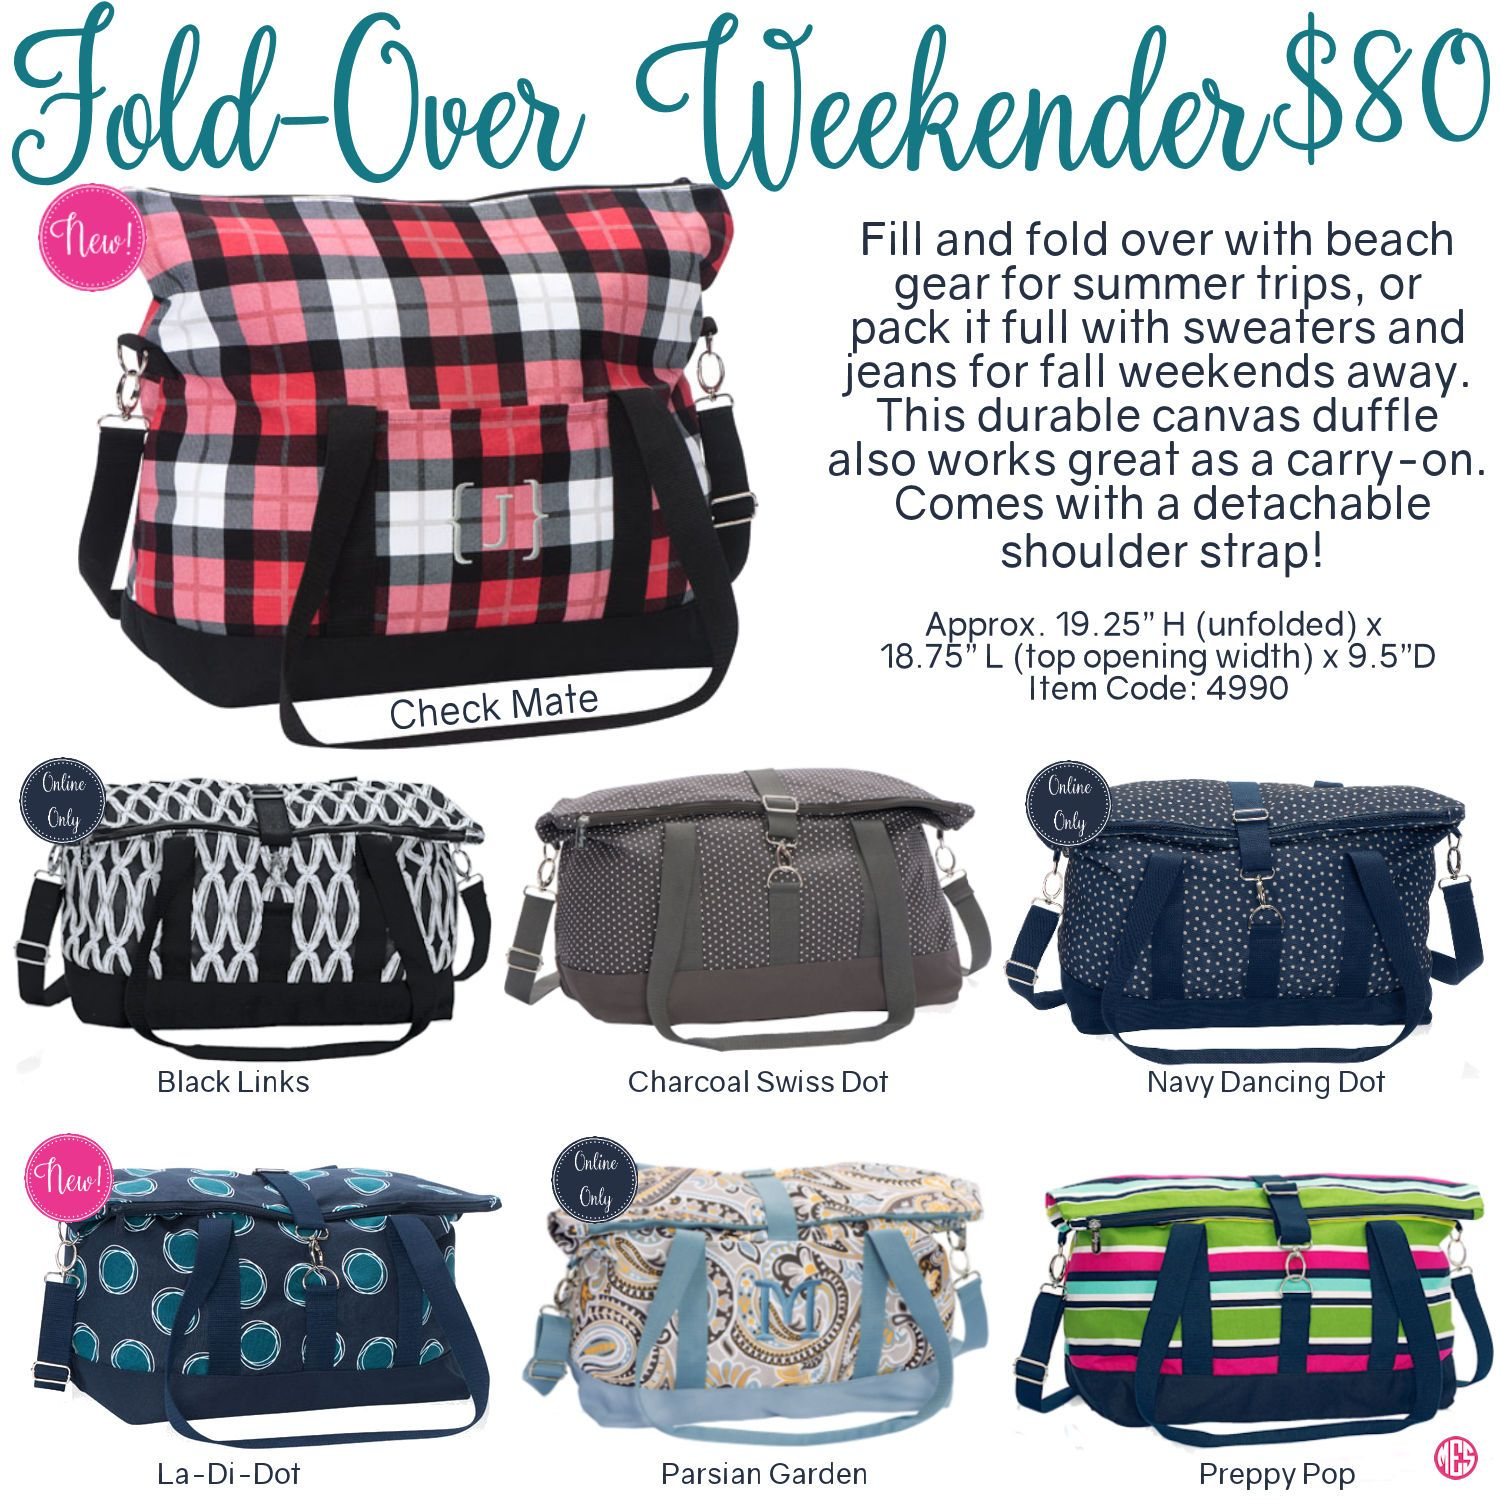 Pin By Lori St Onge On Thirty One Party Favor In 2019